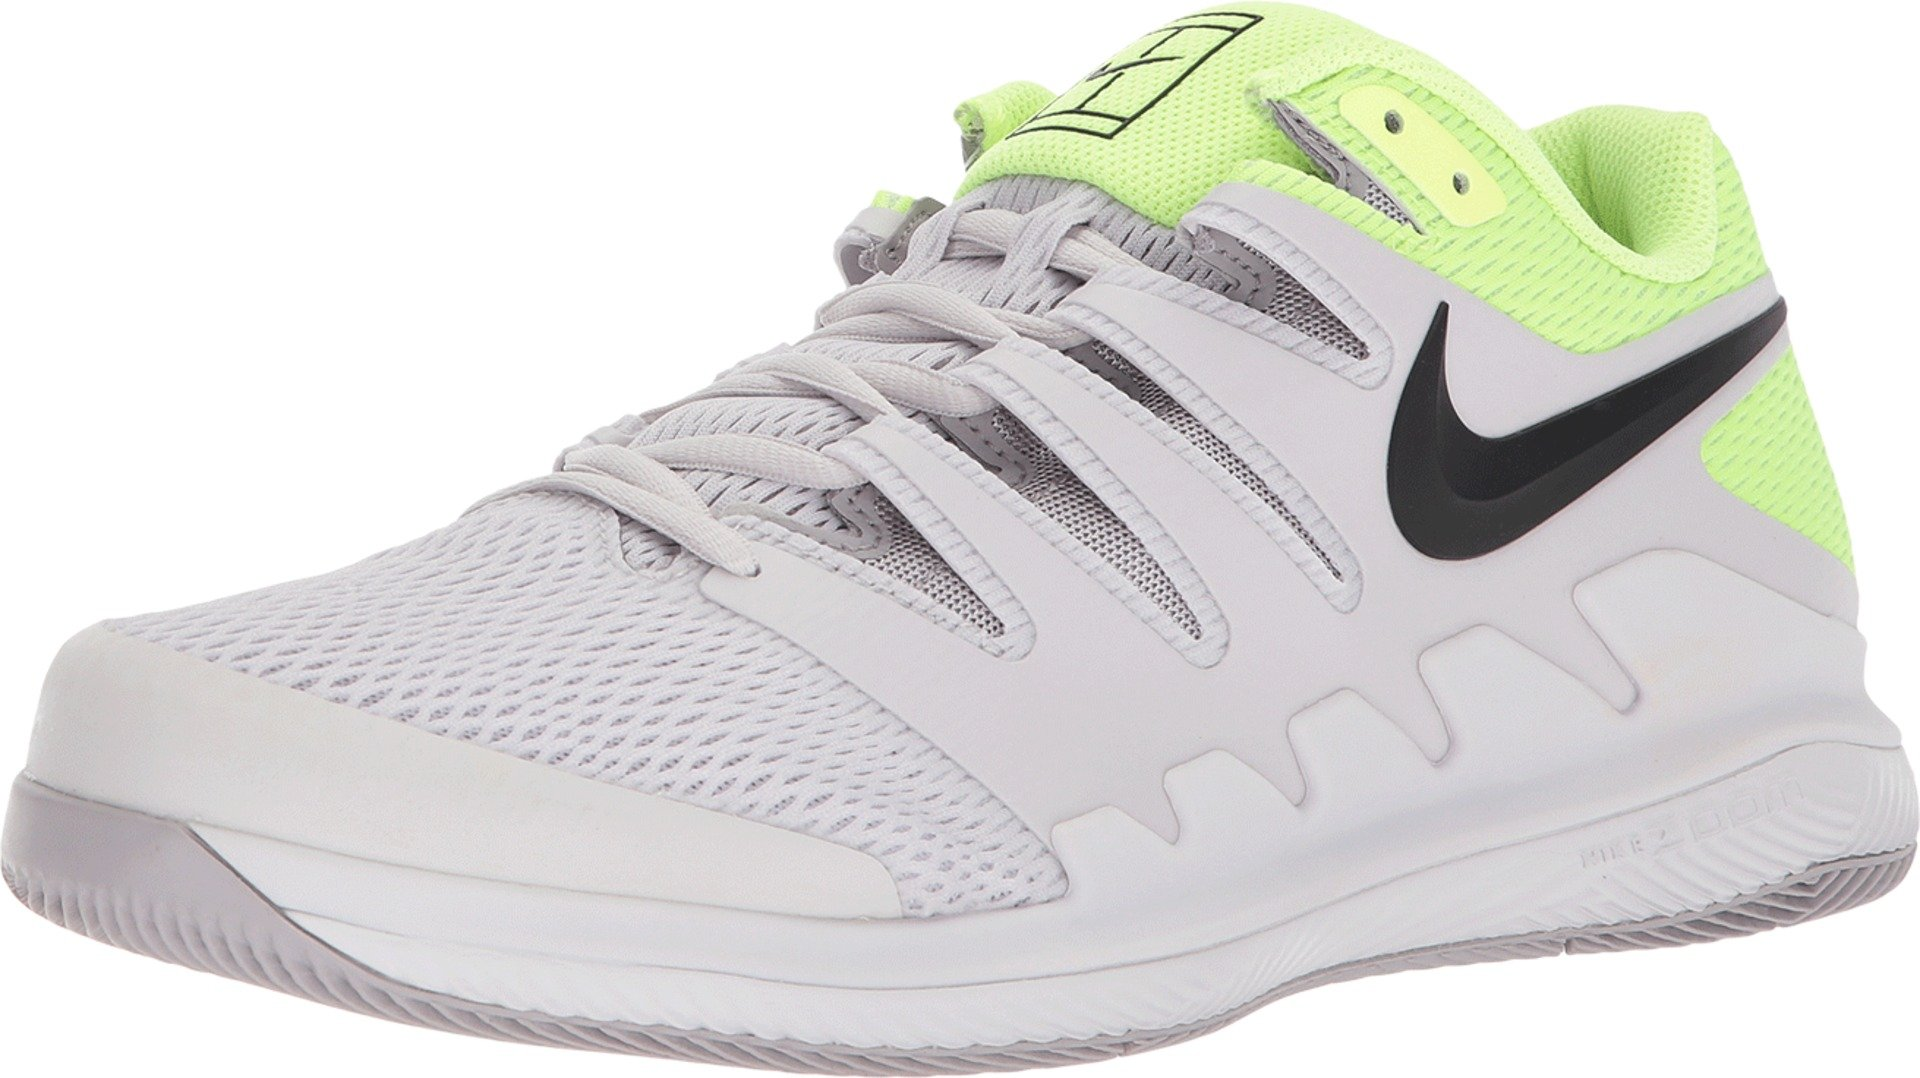 b3985956dfca Galleon - NIKE Men s Zoom Vapor X Tennis Shoes (10.5 D US